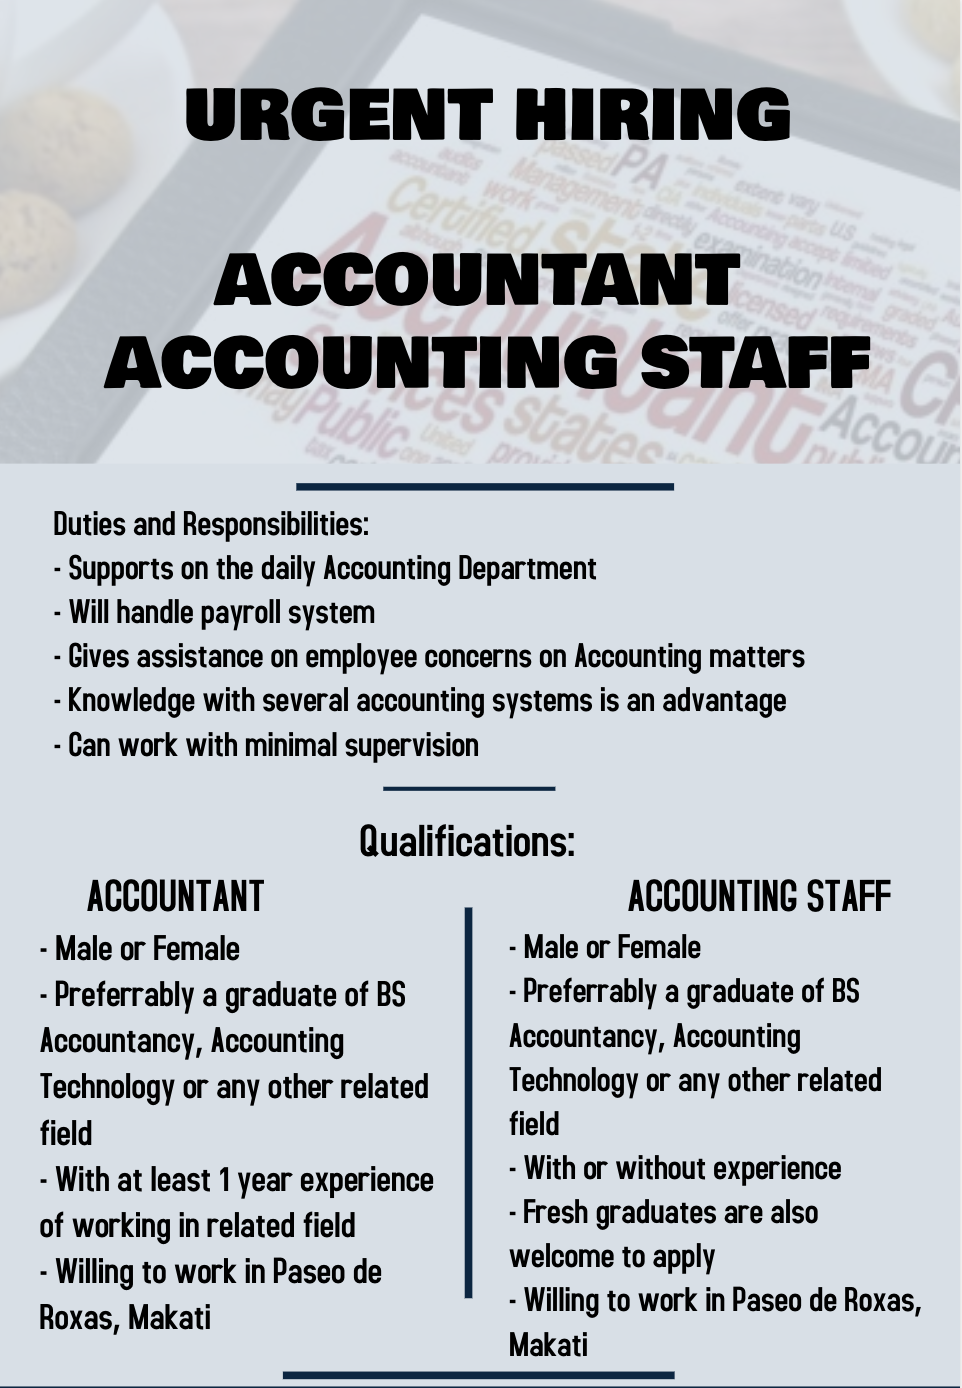 Accountant from Top Asia Management Solutions Inc.